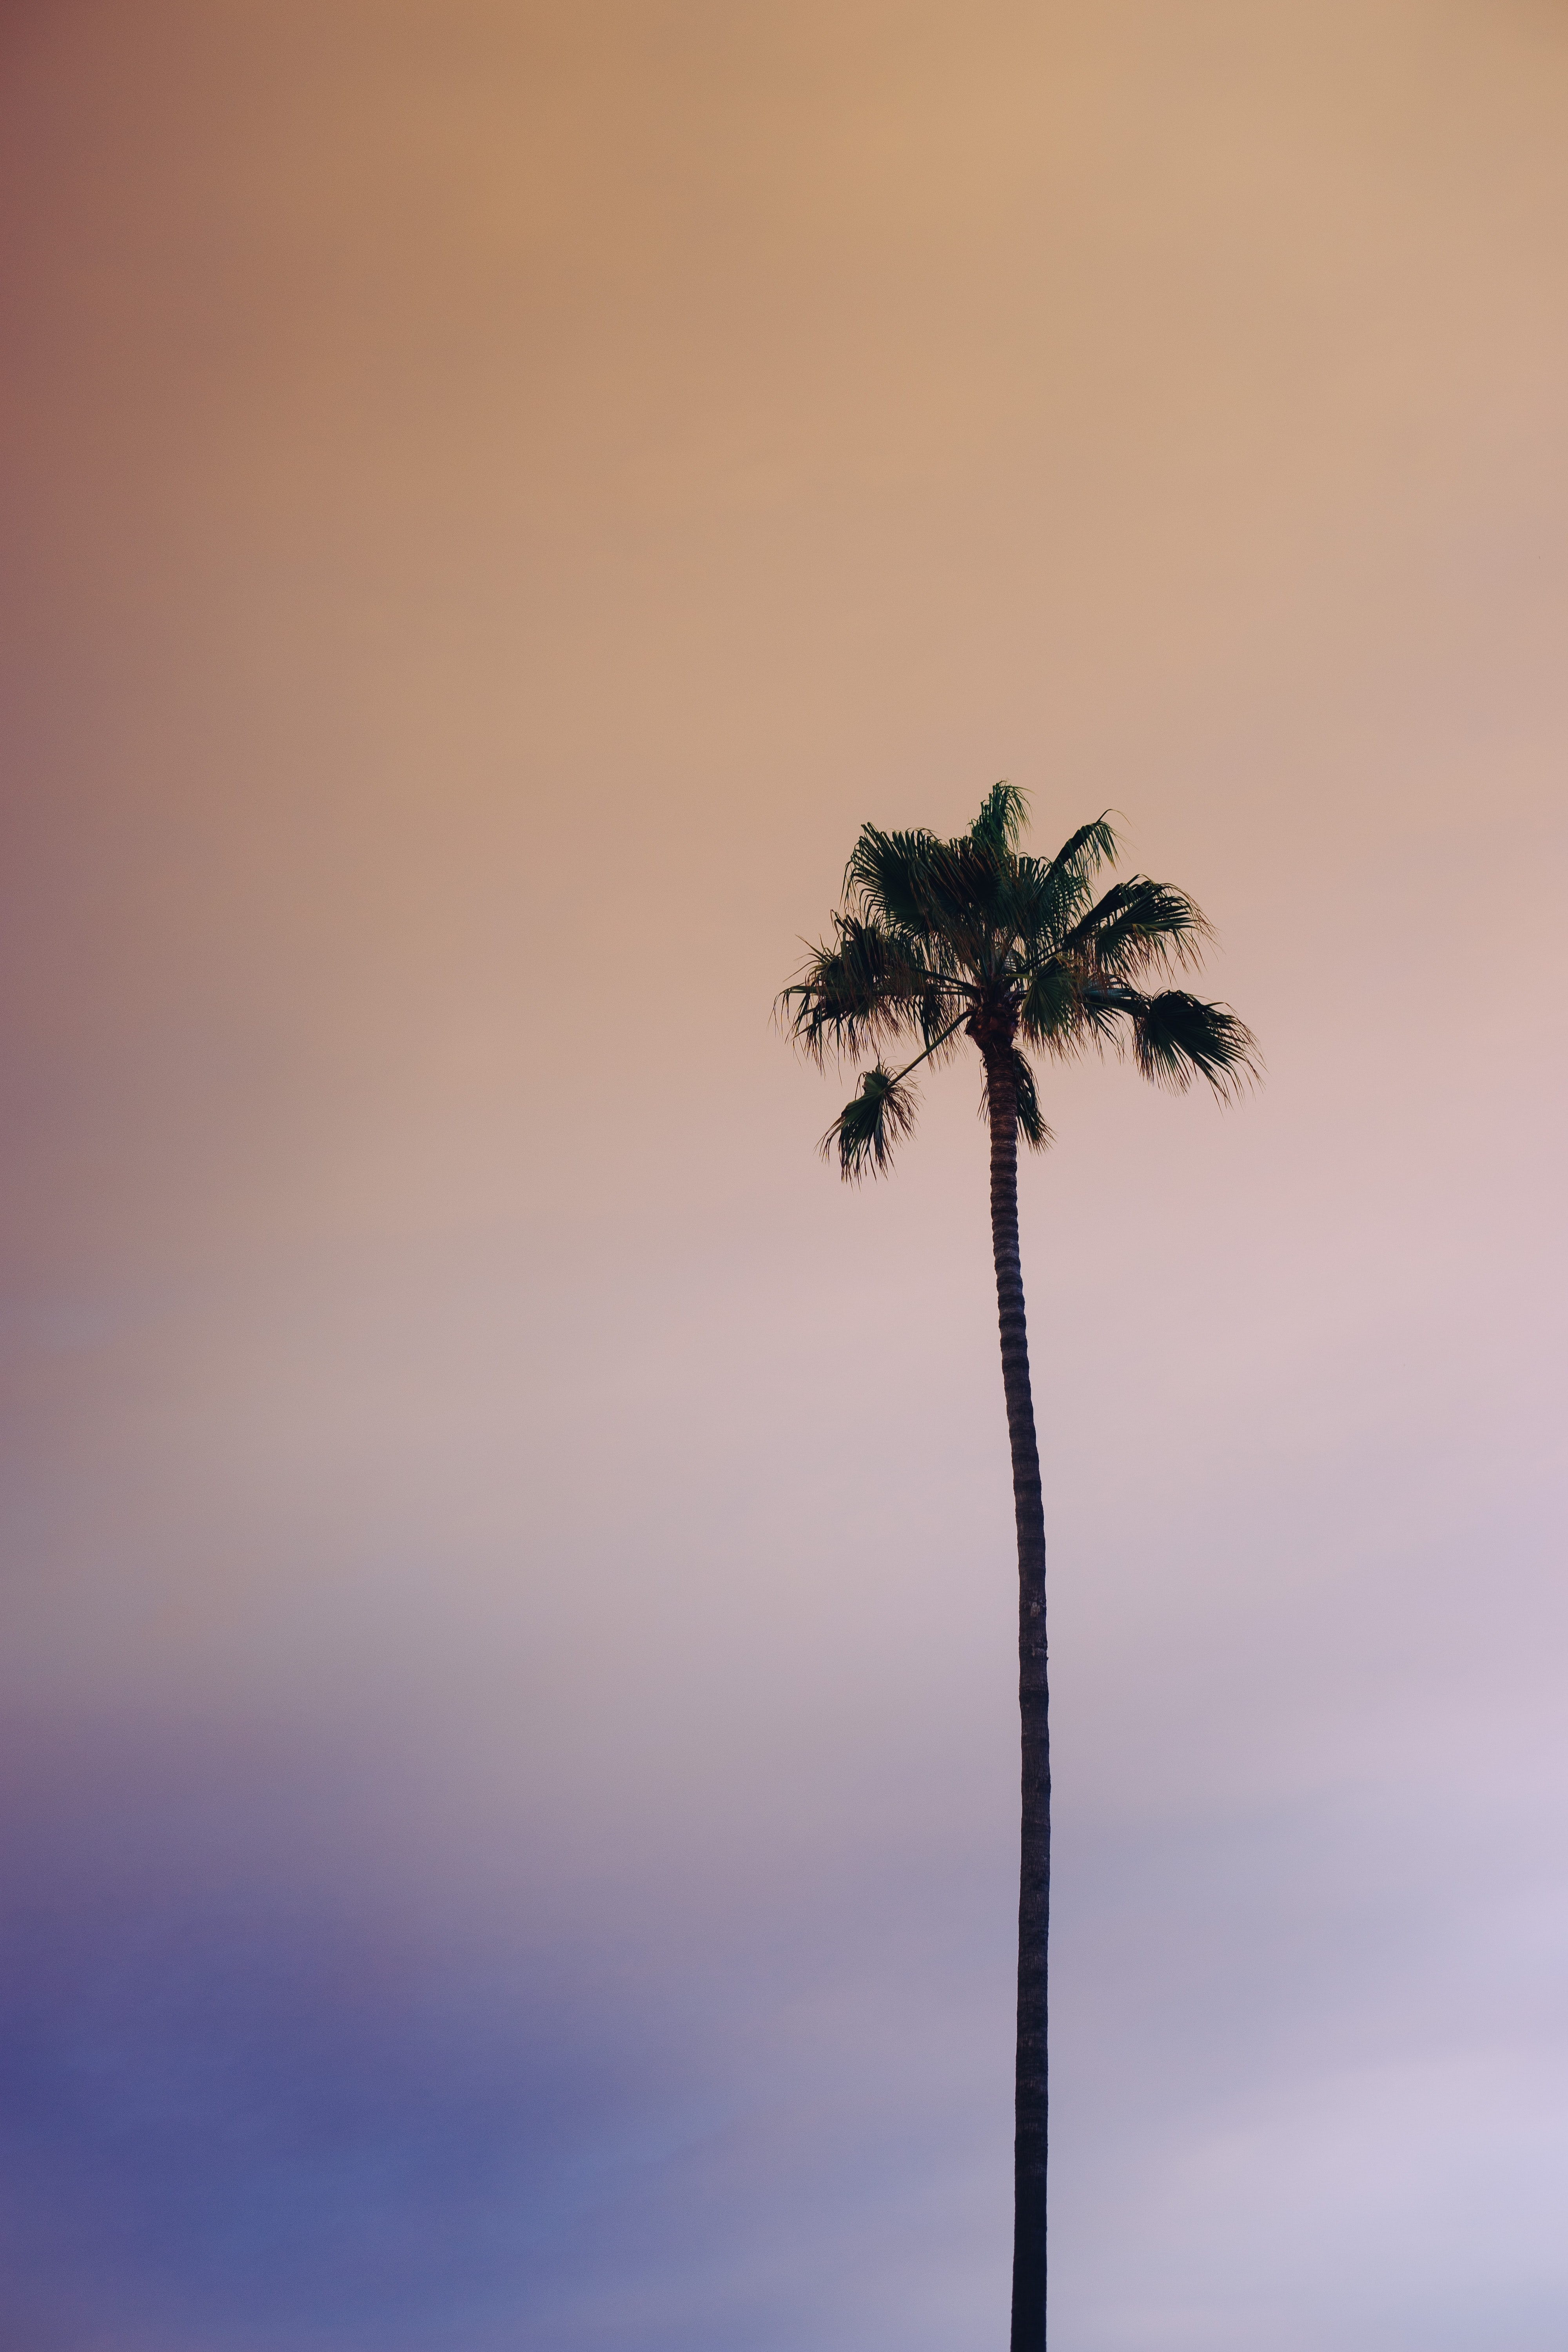 worm's-eye view photography of green palm tree under cloudy sky